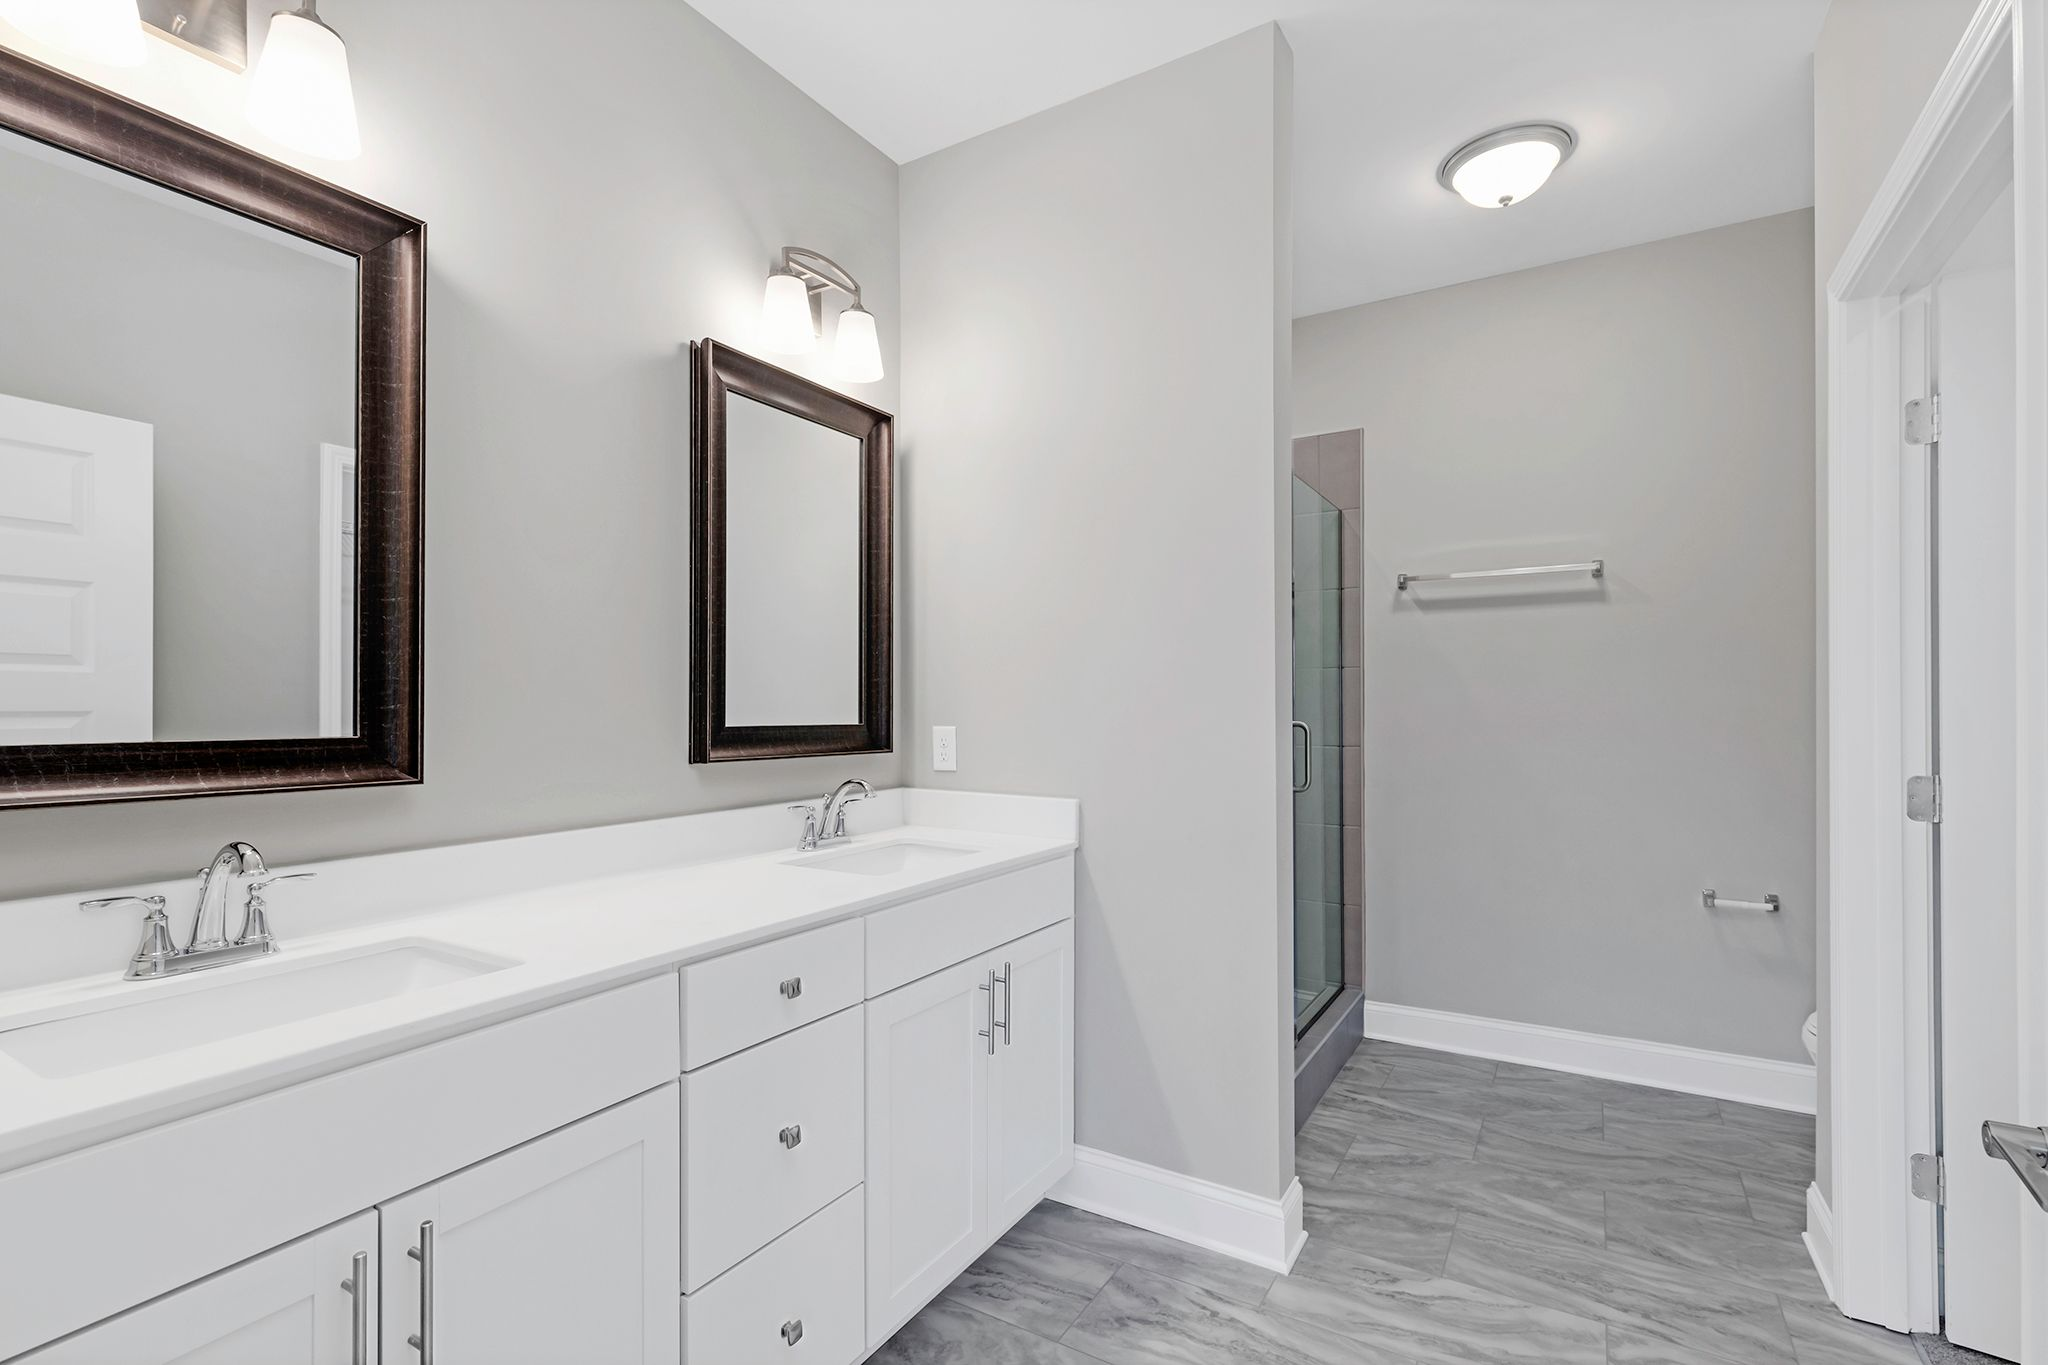 Bathroom featured in The Waverleigh Courtyard Cottage By Goodall Homes in Chattanooga, GA